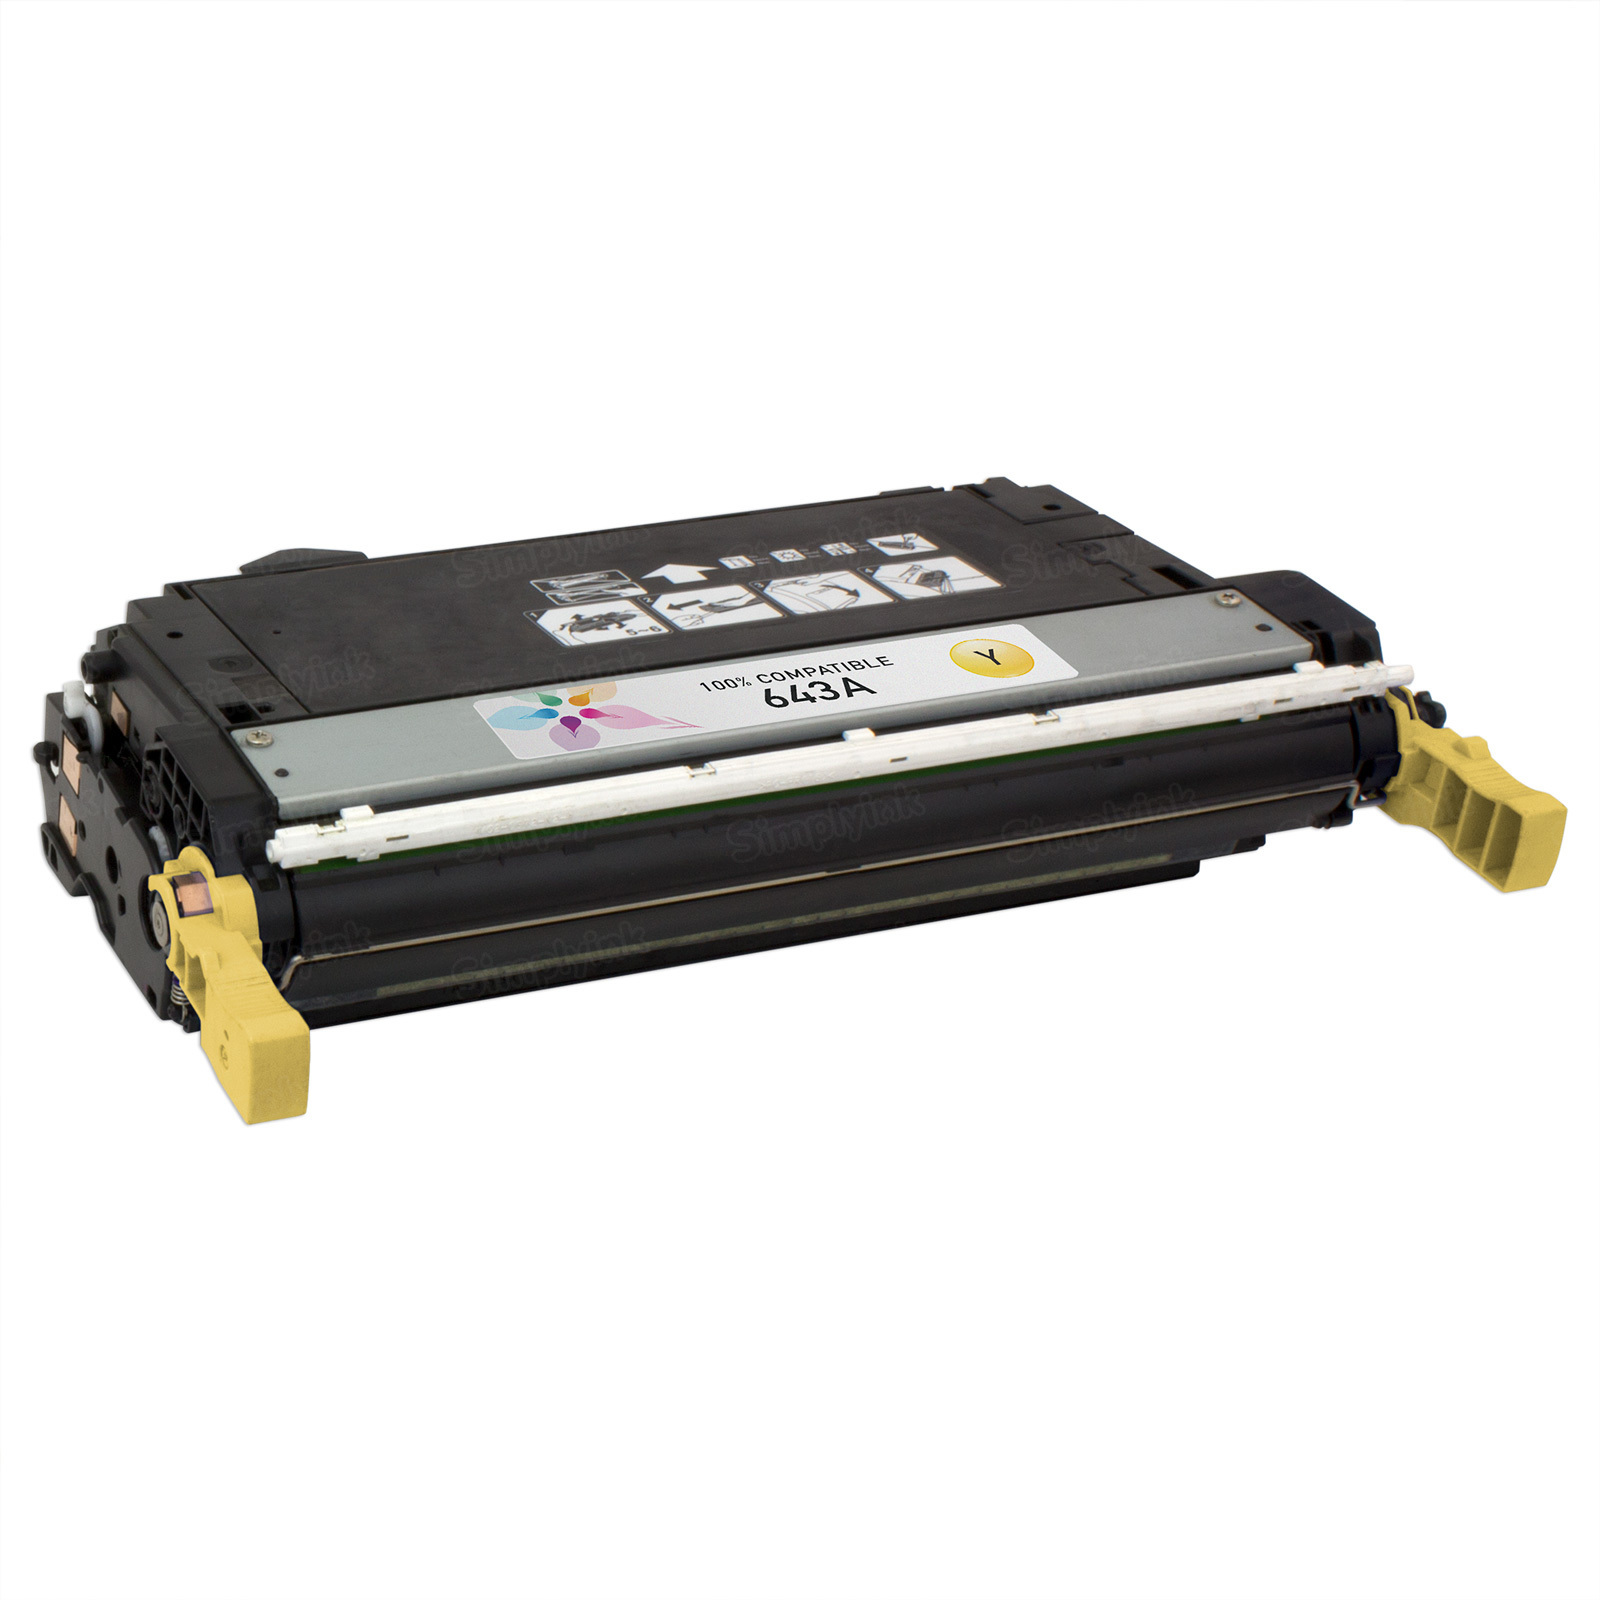 Remanufactured Replacement Yellow Laser Toner for HP 643A